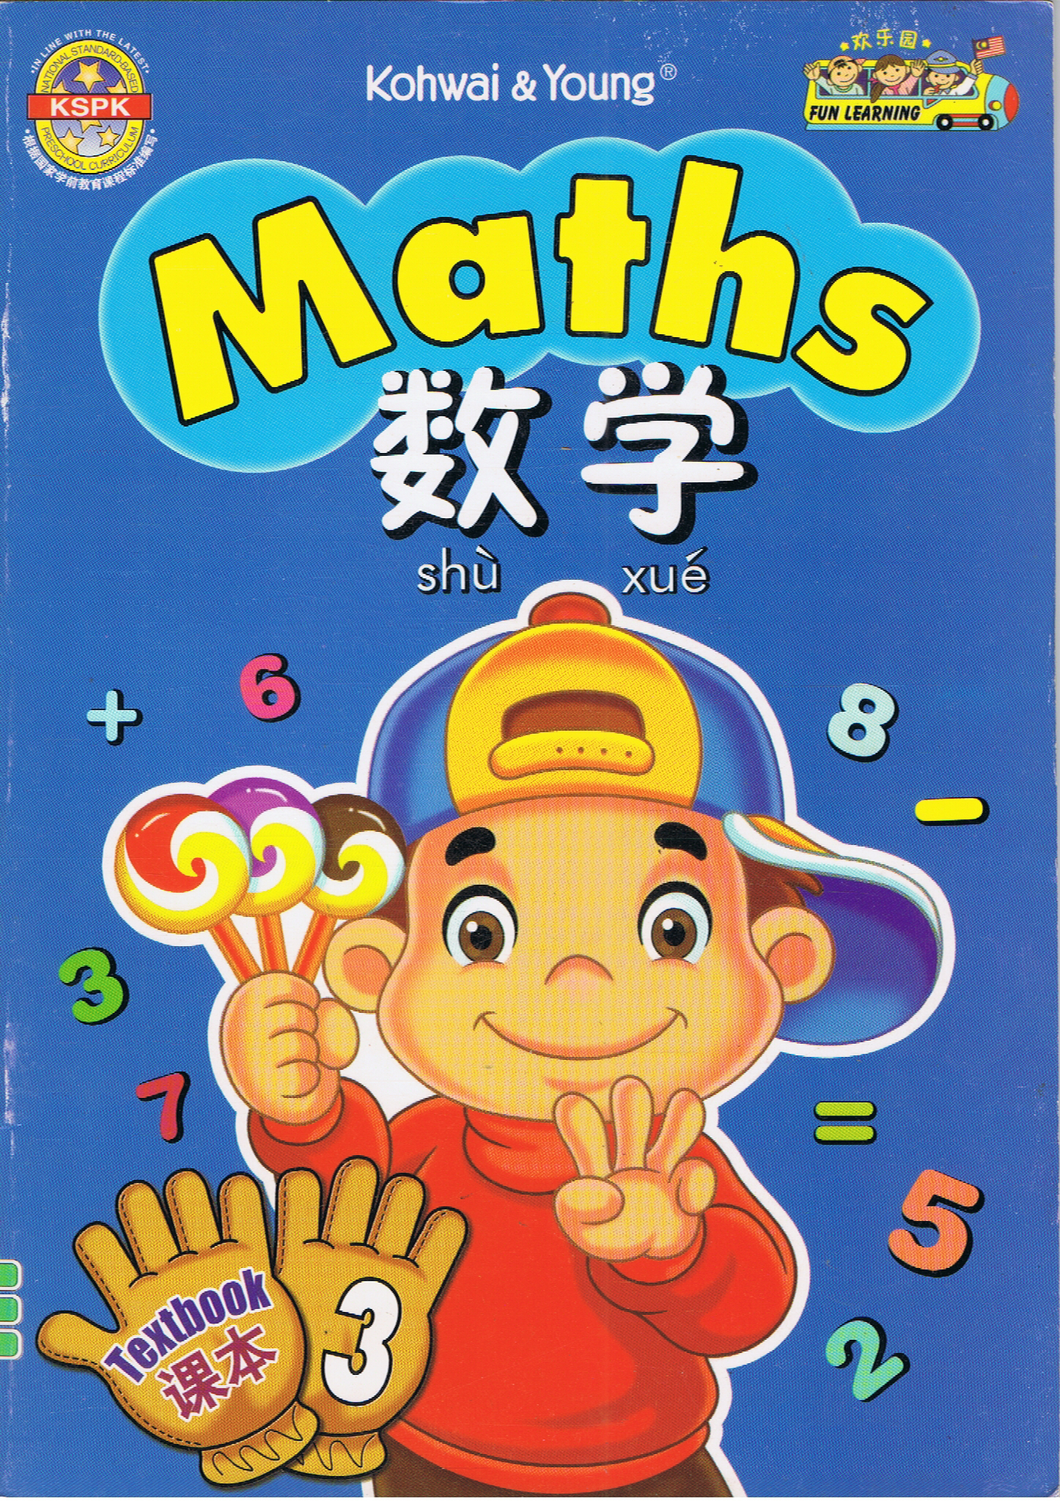 Learning Maths Series Textbook 3